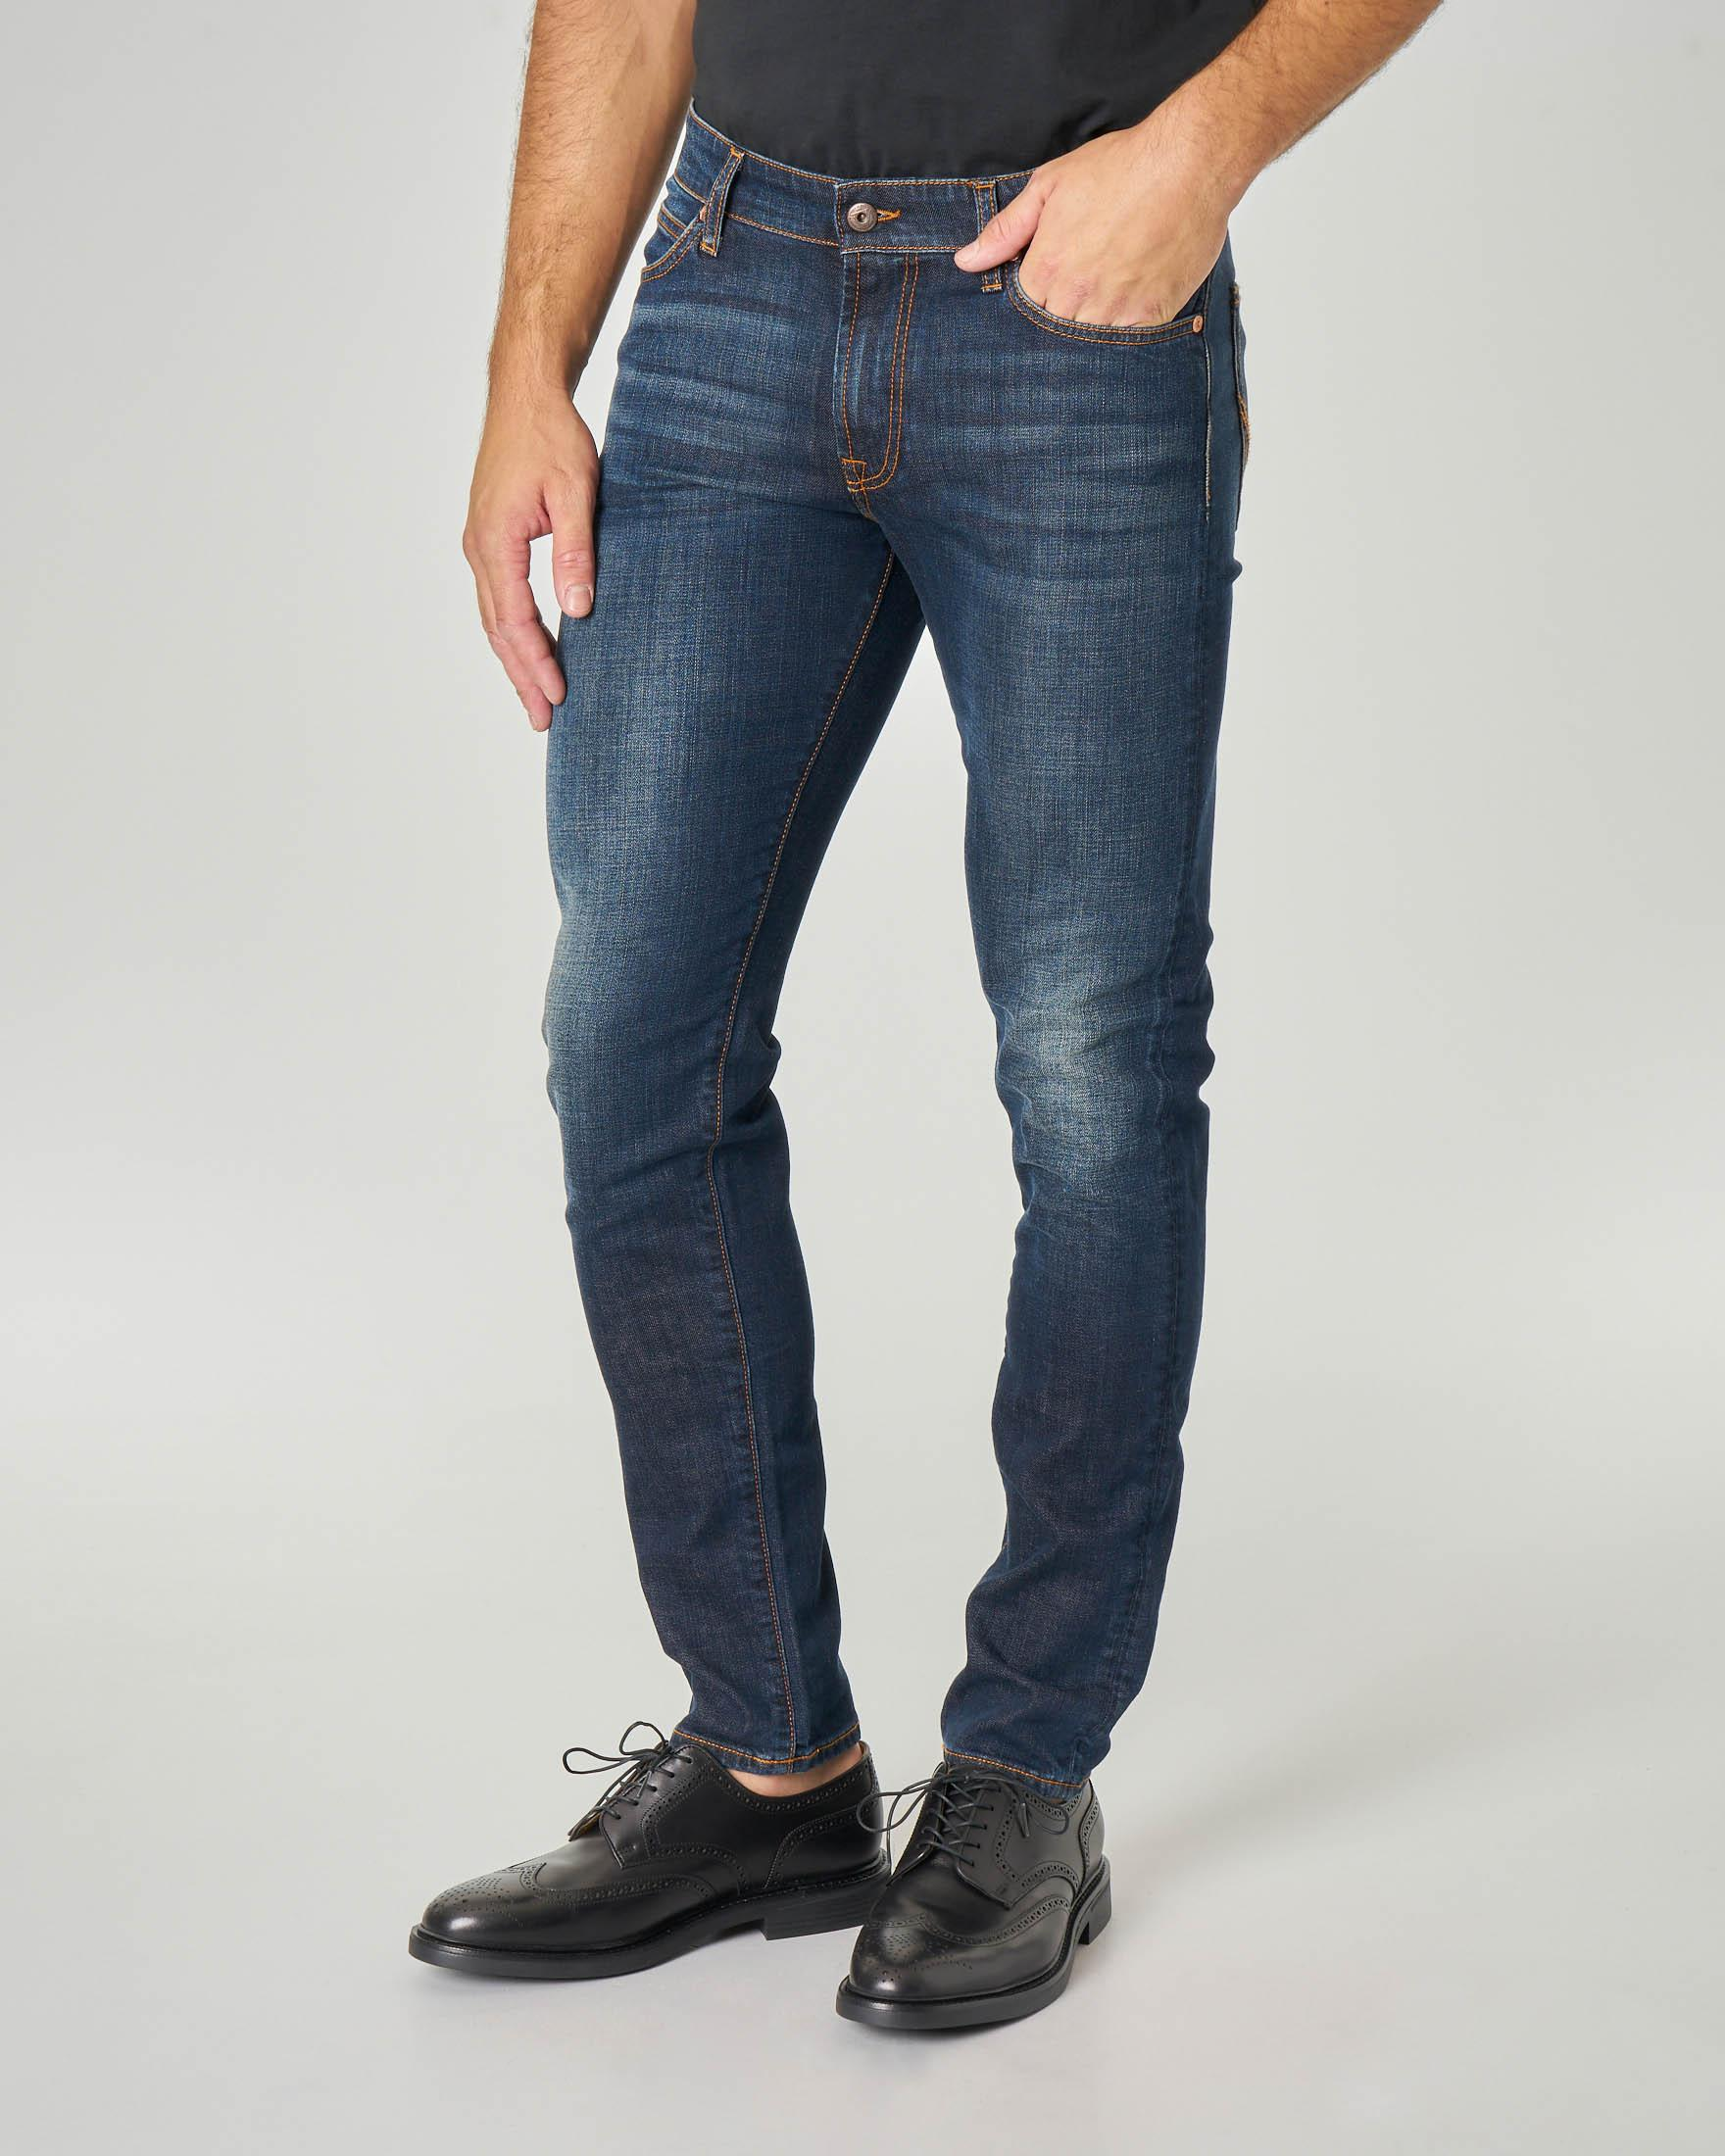 Jeans 517 Weared3 lavaggio blu scuro con sbiancature